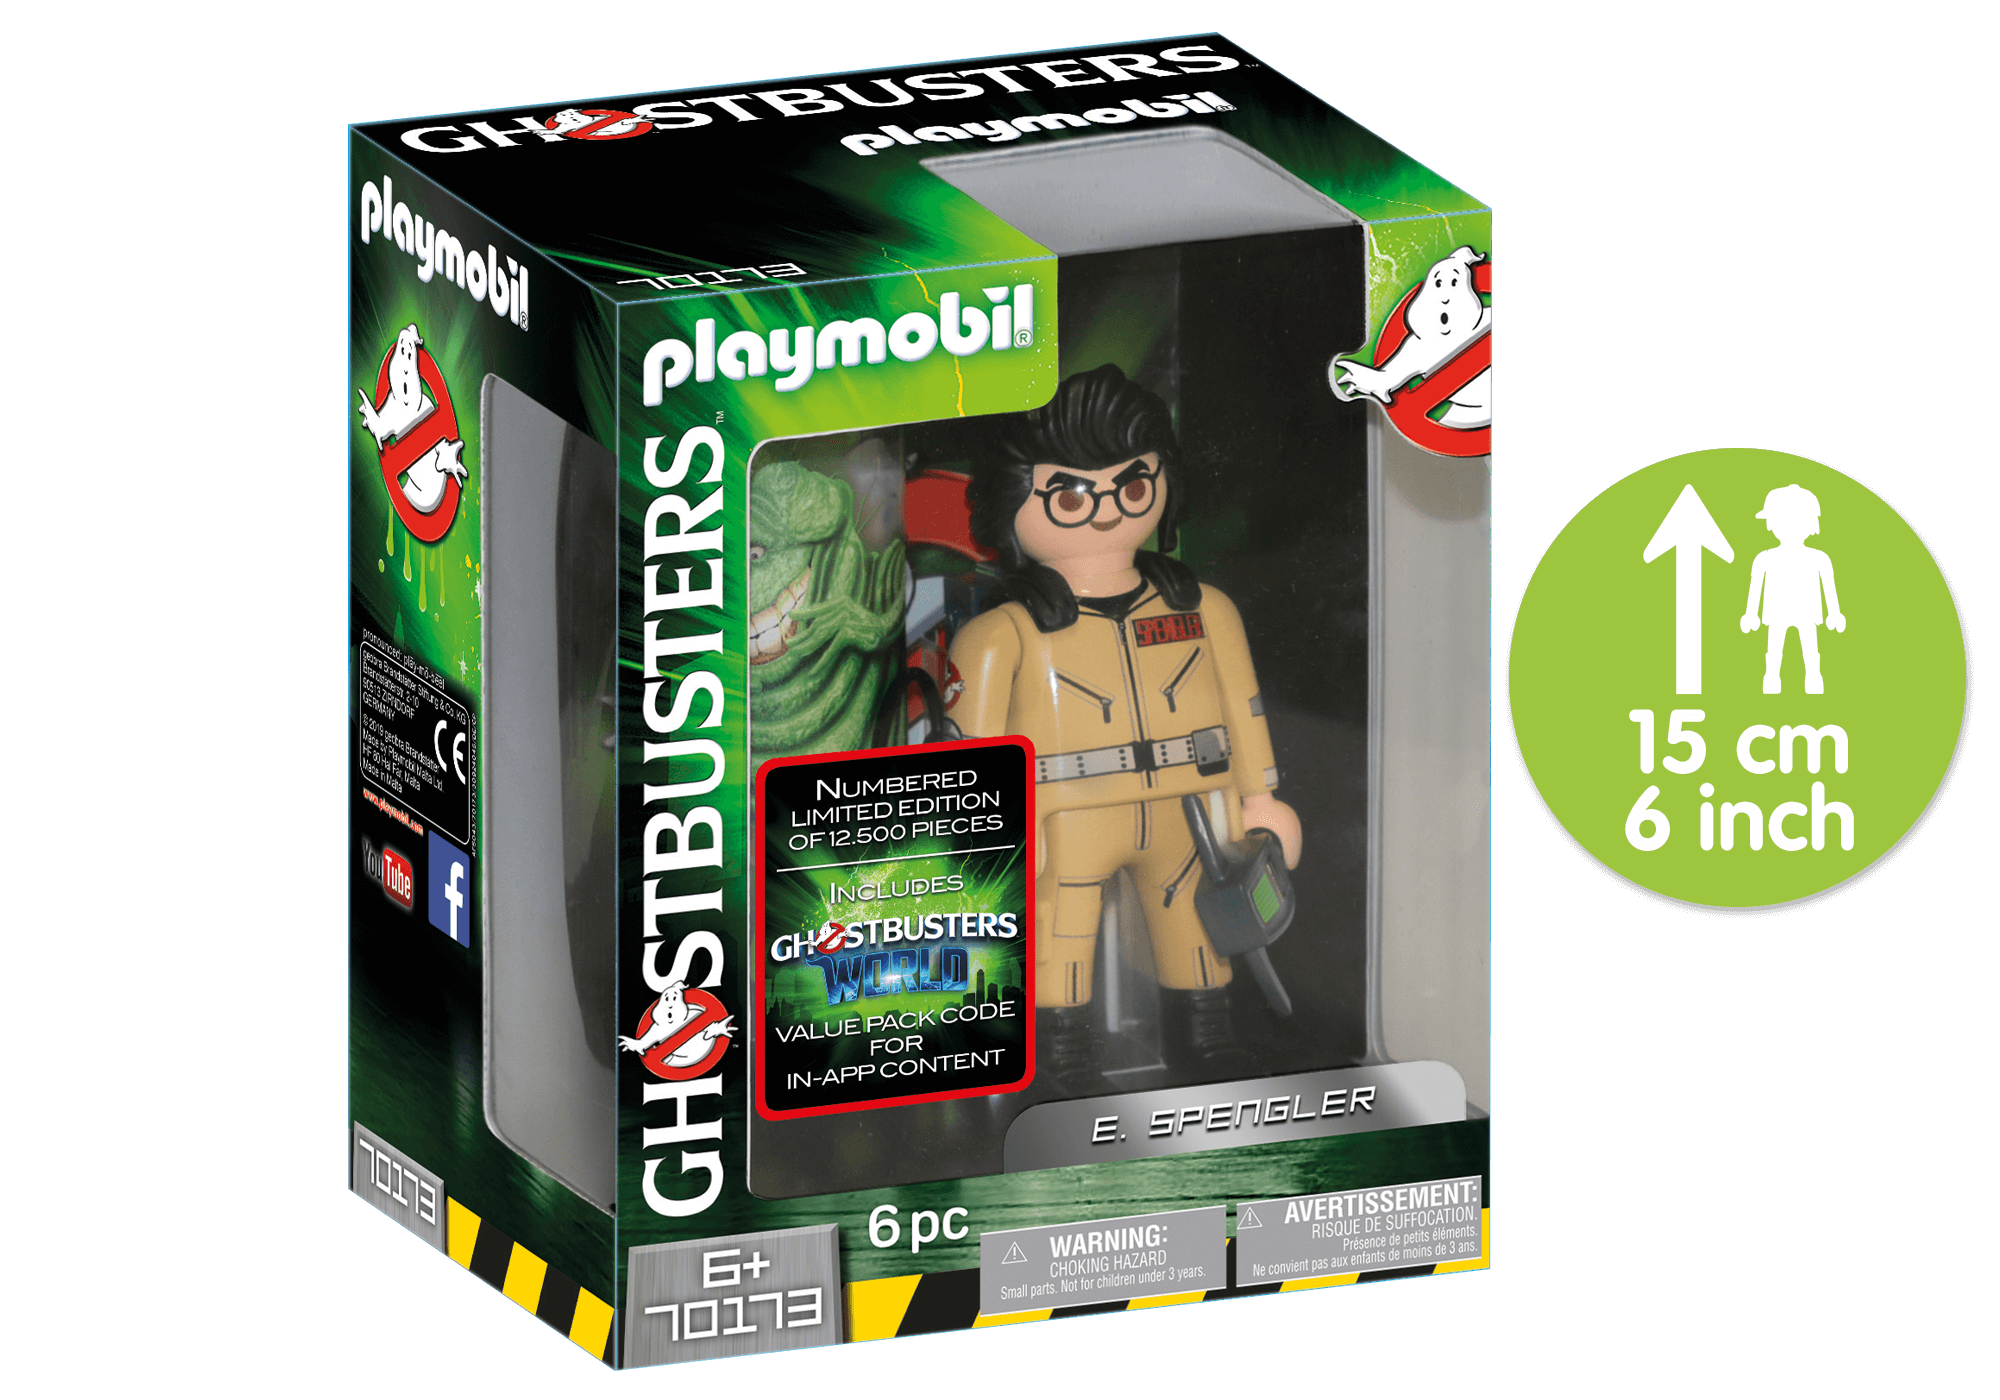 http://media.playmobil.com/i/playmobil/70173_product_detail/Ghostbusters™ Collector's Edition E. Spengler